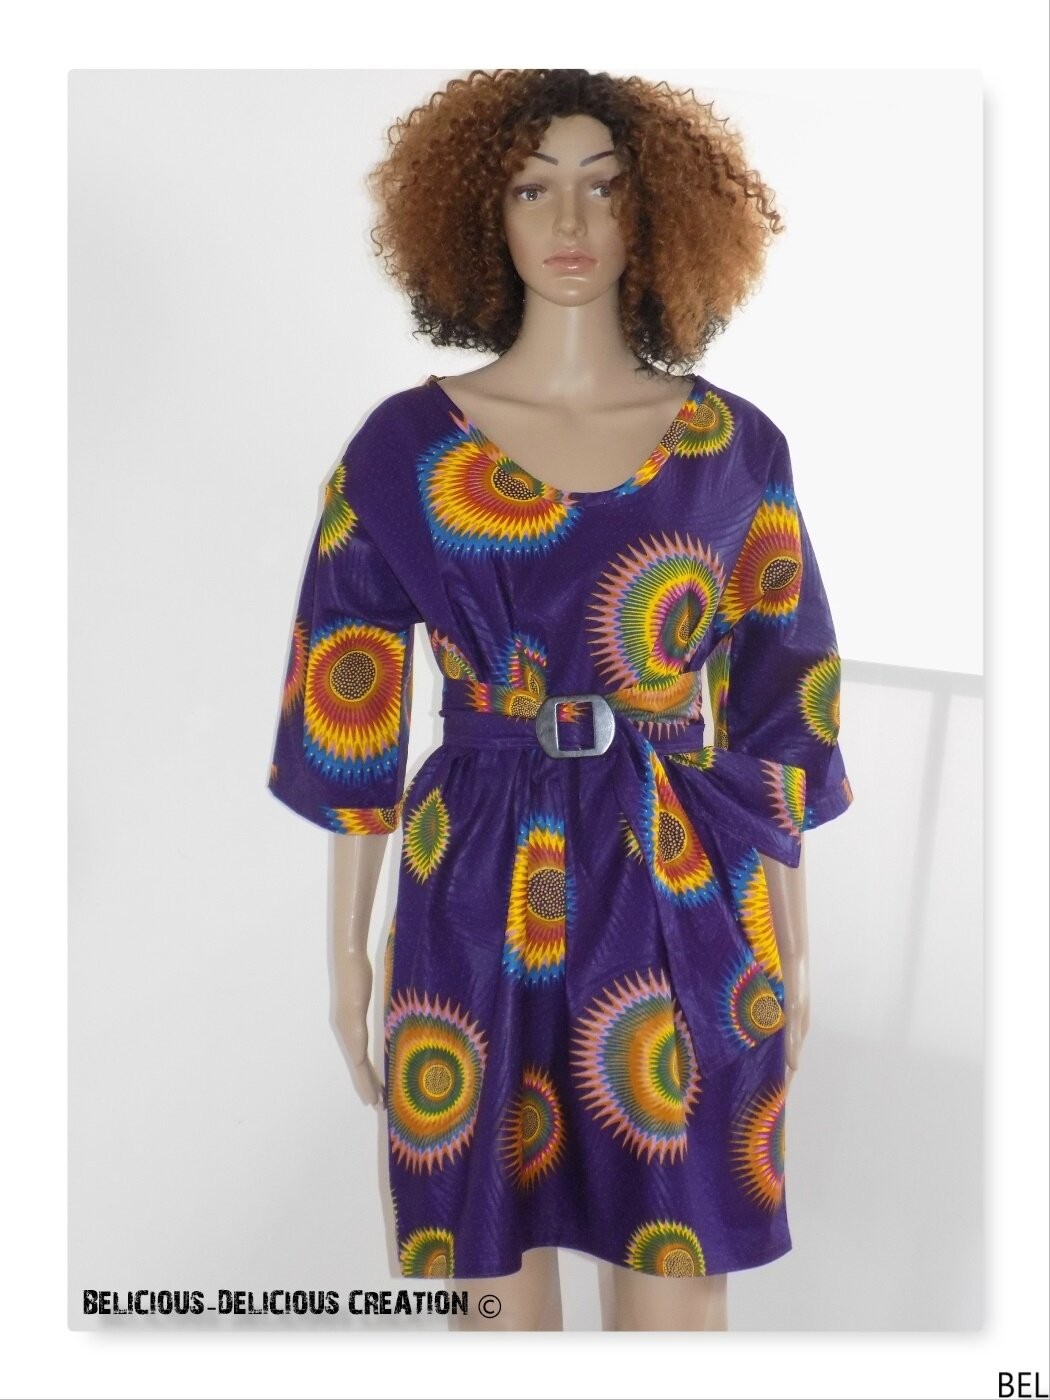 Originale Robe !! KIMONO WAX !! en coton multicolore Taille: 38/40 Long 89cm BELICIOUS-DELICIOUS-CREATION